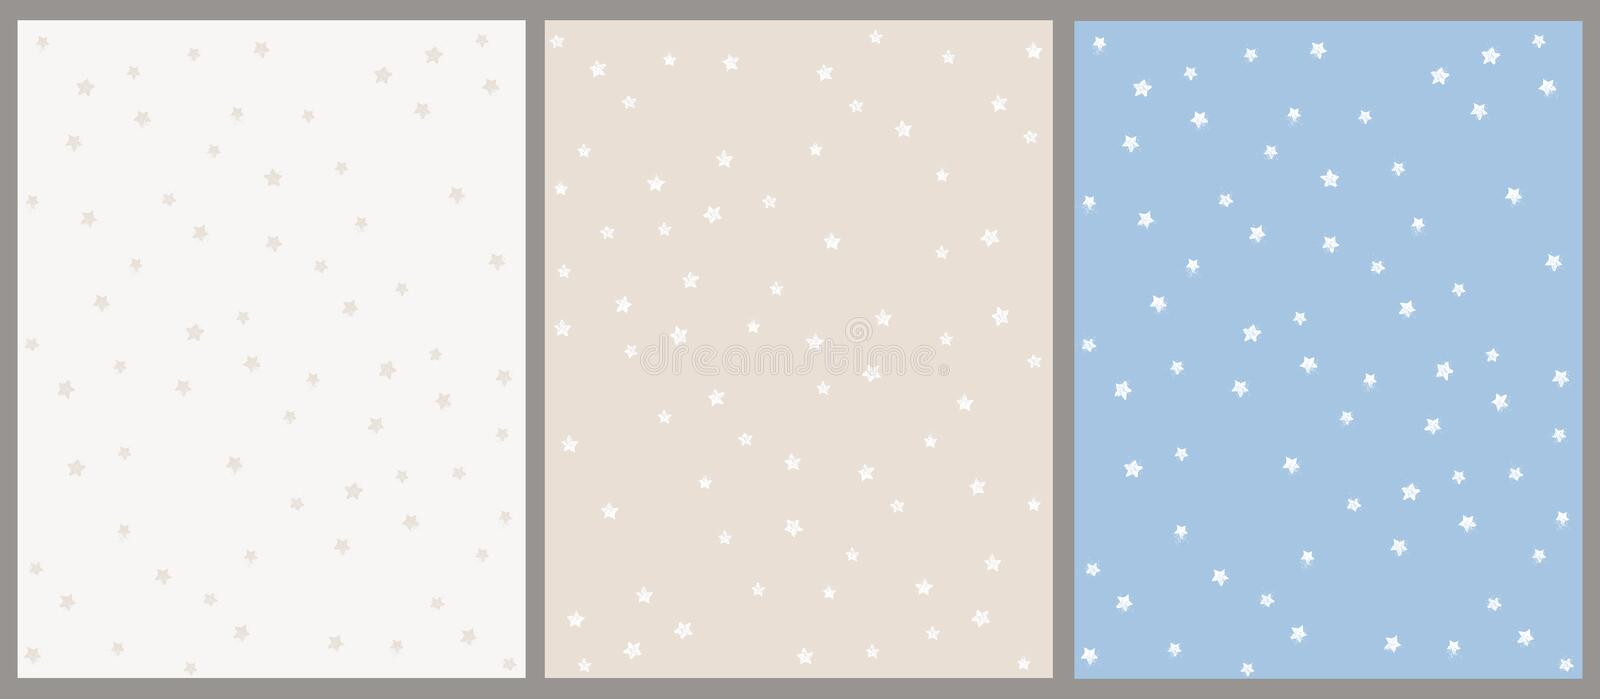 Hand Drawn Star Vector Pattern Set. Beige and Blue Backgrounds with White Stars. royalty free stock photos